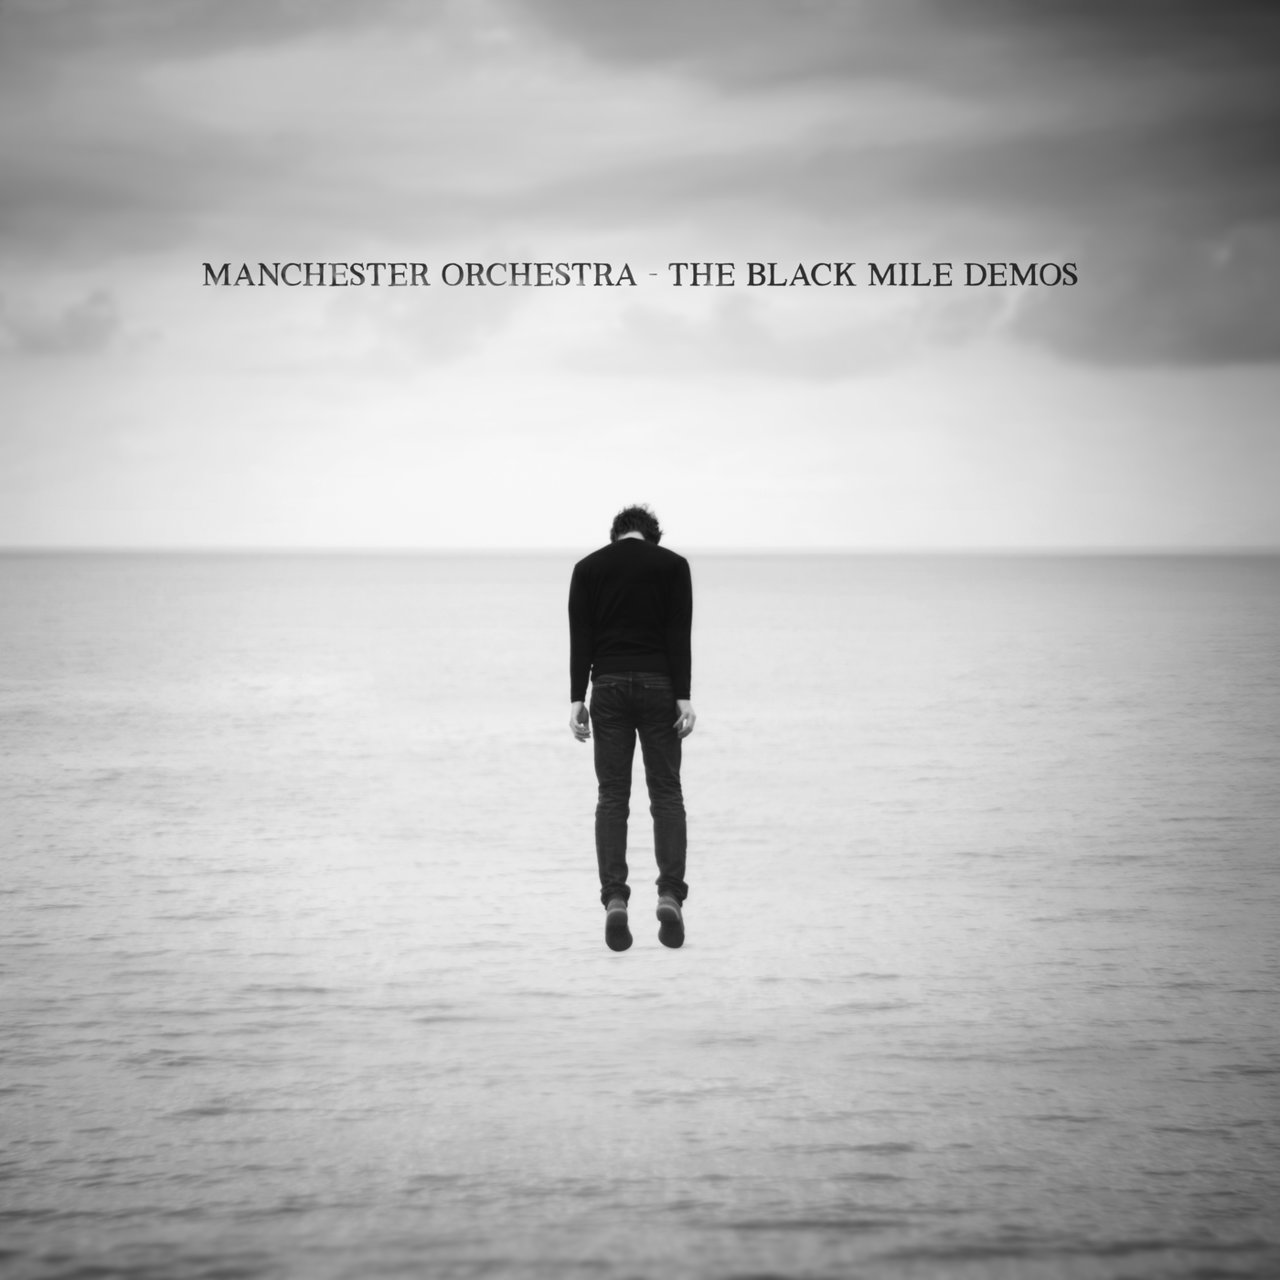 The Black Mile Demos